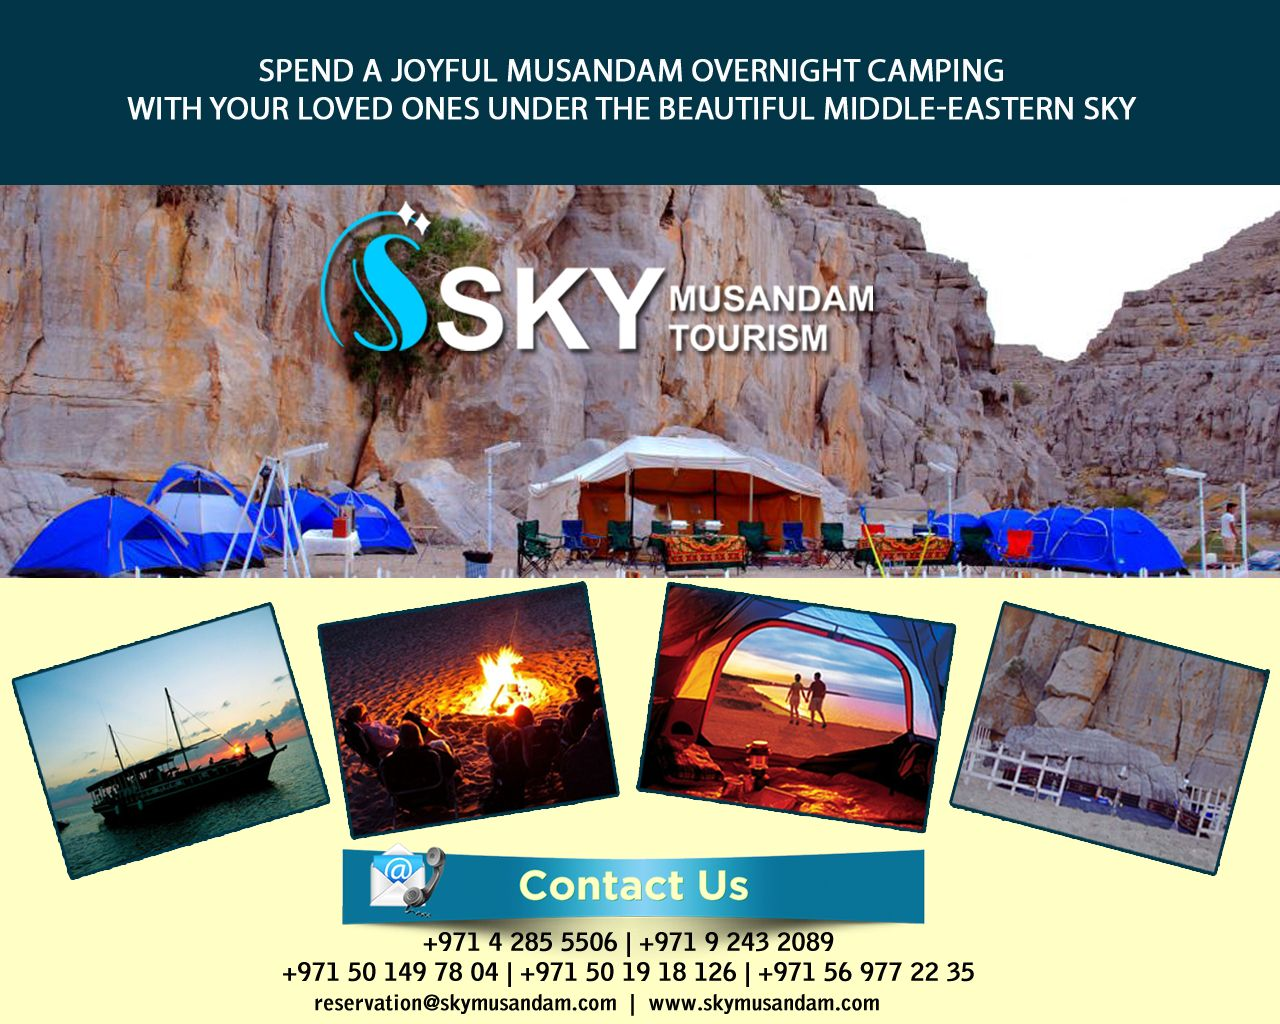 Enjoy Musandam Overnight Camping At Delightful Remote Campsite Oman Only With Sky Musandam Tourism For More Details Visit Www Skymusand Overnight Sky